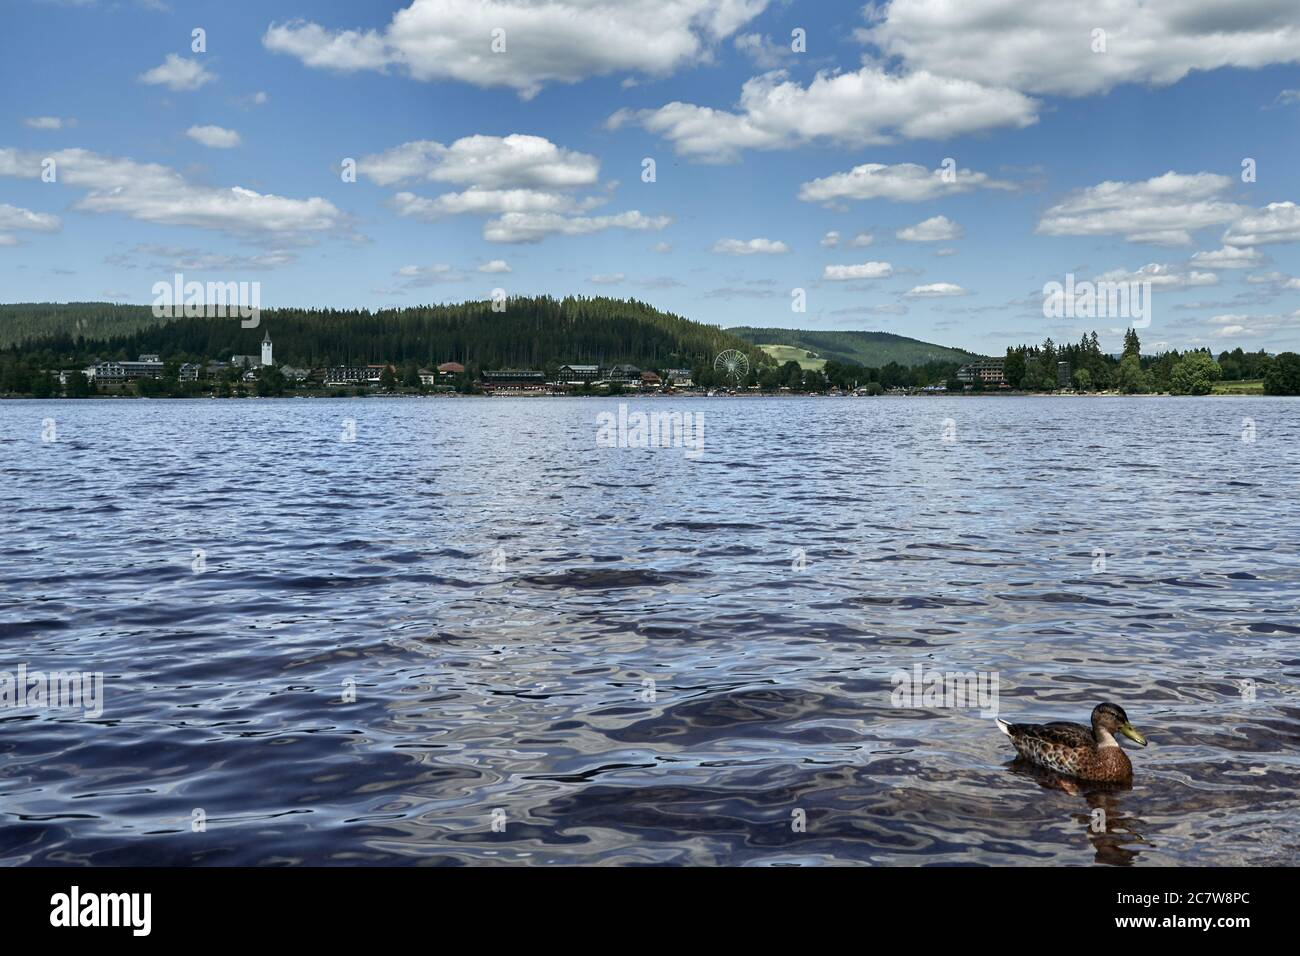 Lake Titisee in the Black Forest with green vegetation and the town behind the water in Titisee-Neustadt, Germany Stock Photo